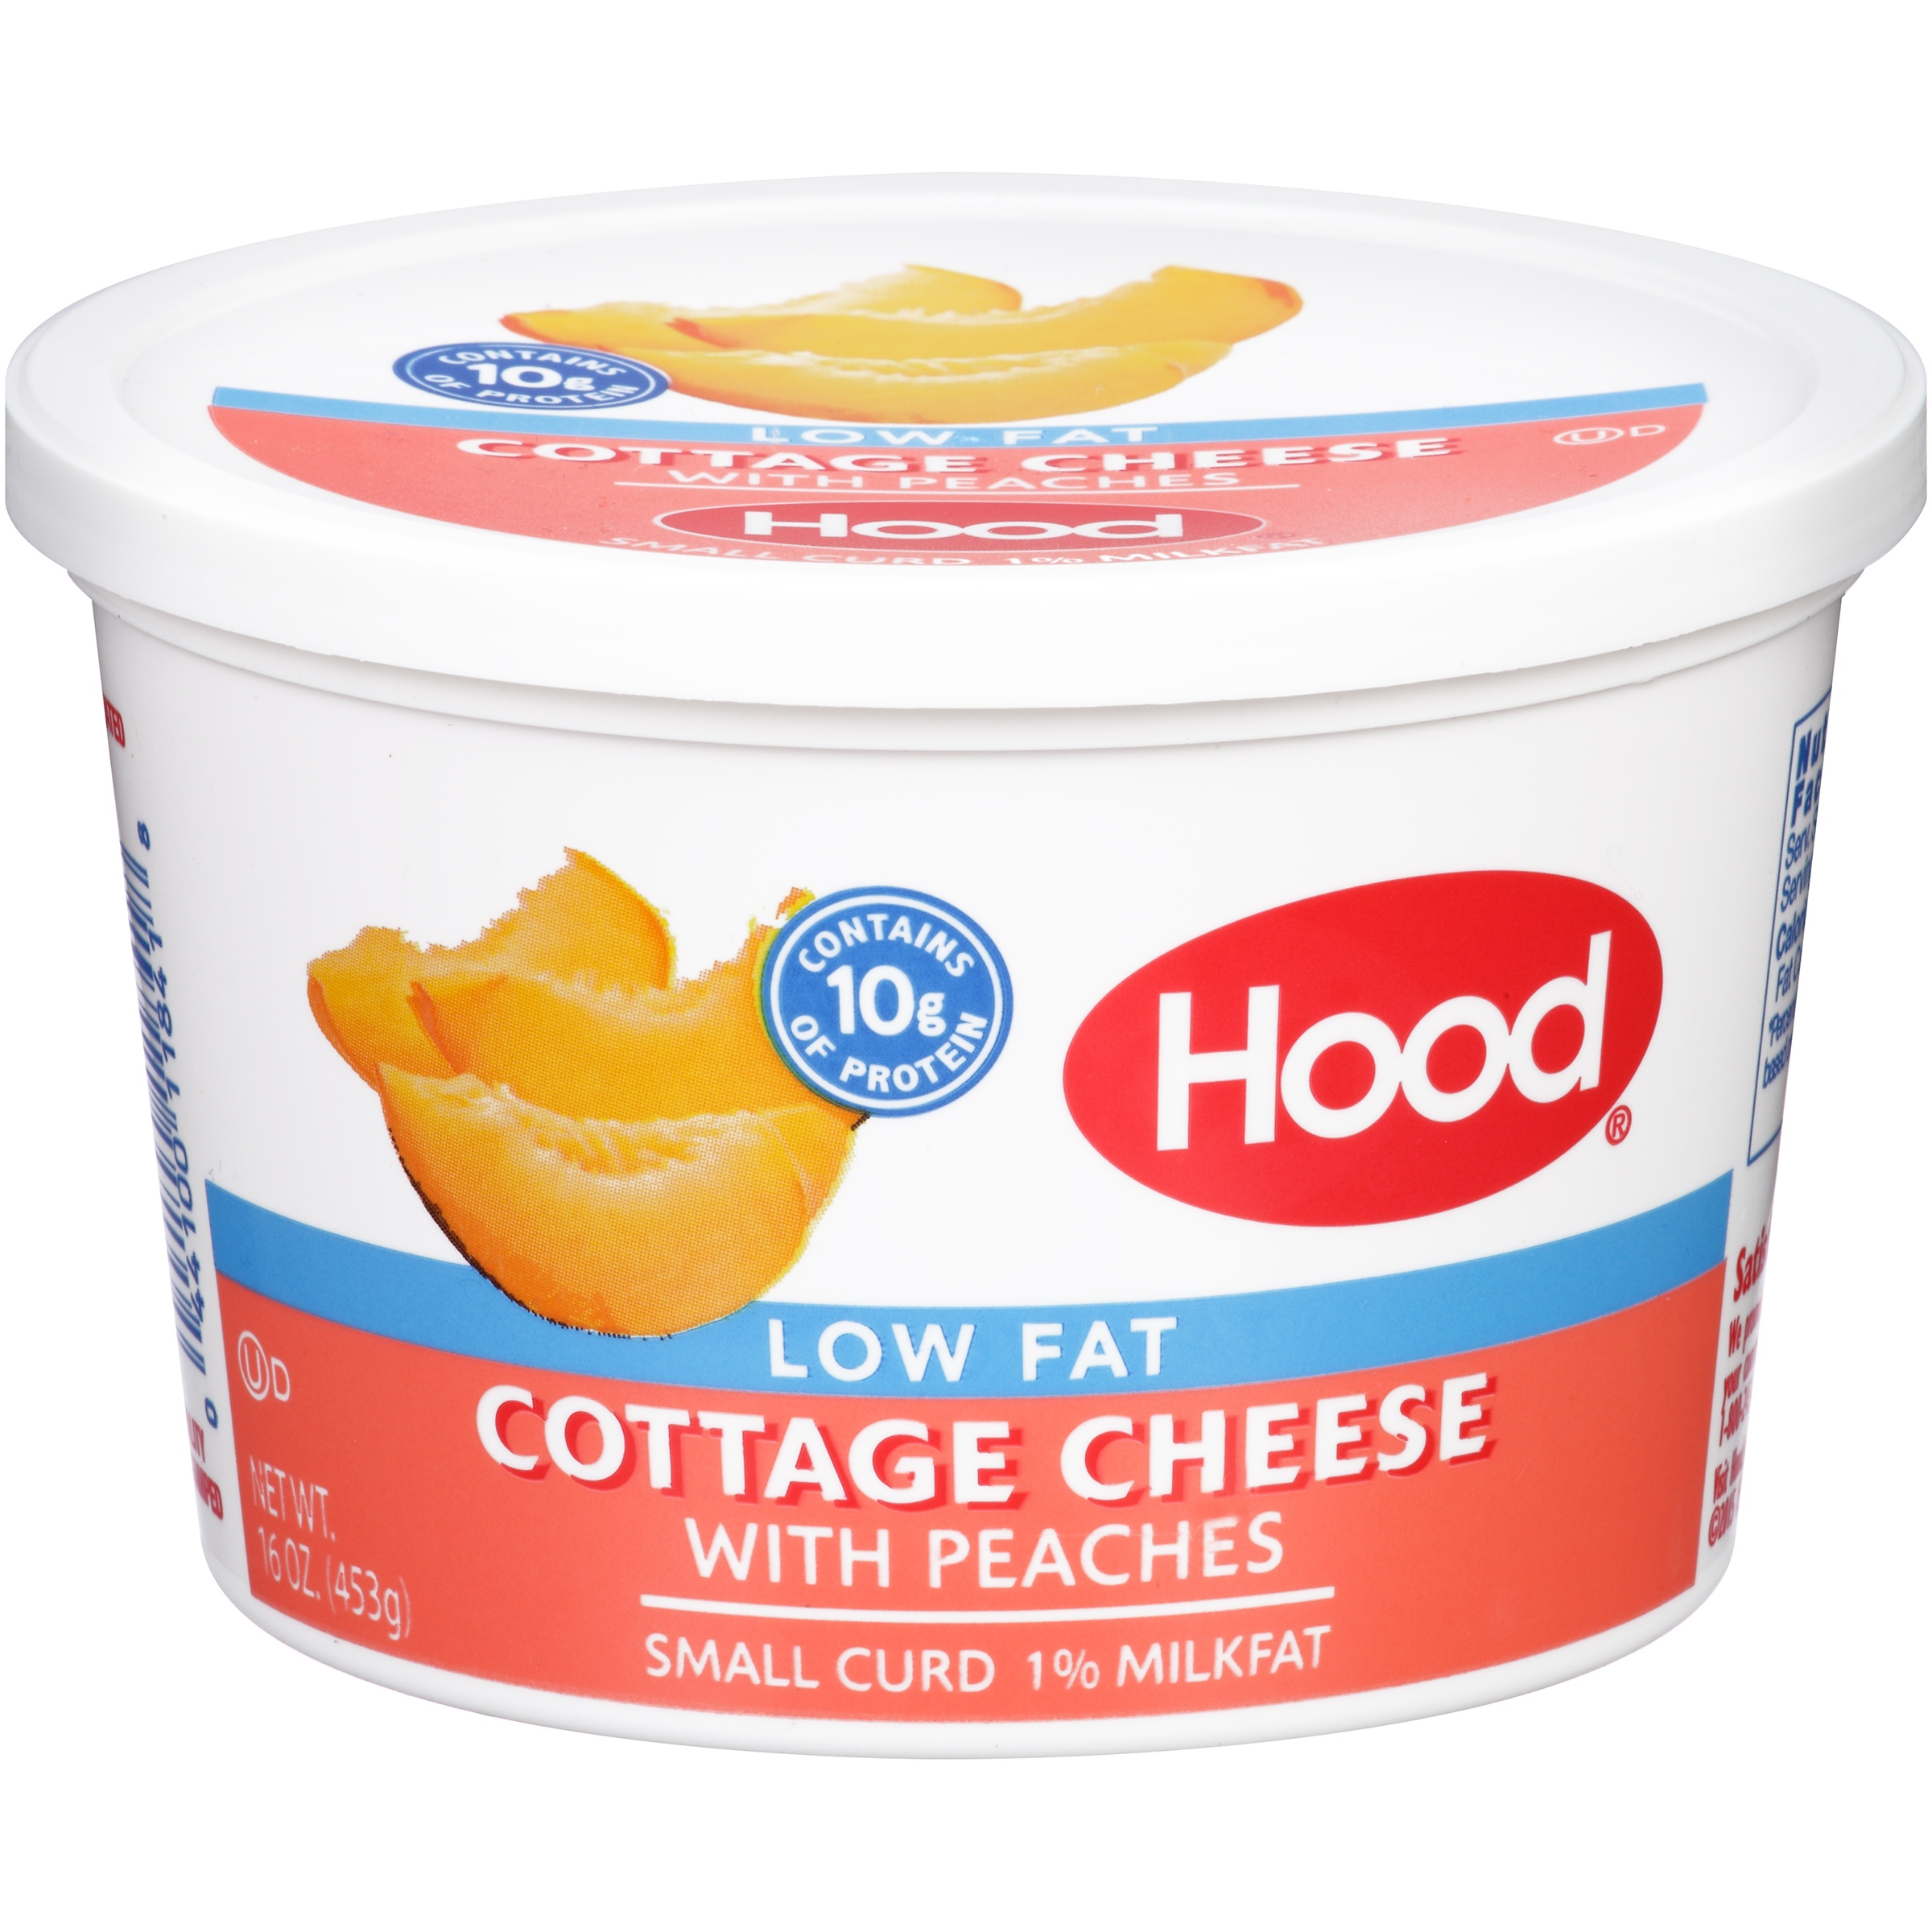 Hood Low Fat Cottage Cheese With Peaches, Small Curd 1% Milkfat, 16 Oz